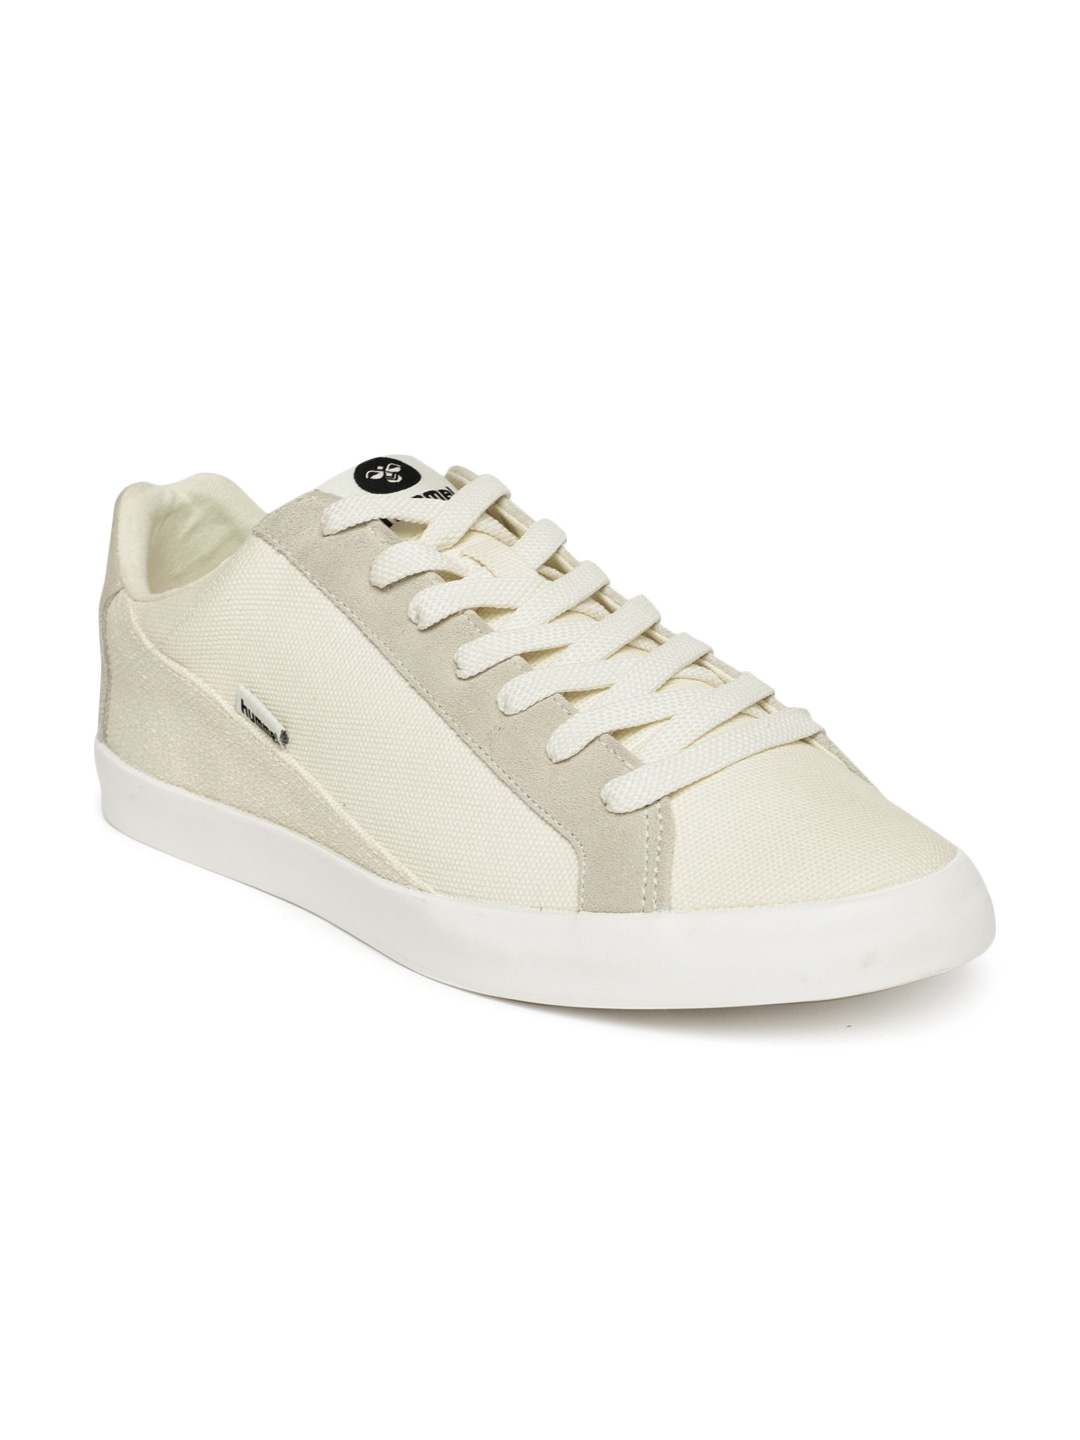 Off-White Cross Court Canvas Sneakers